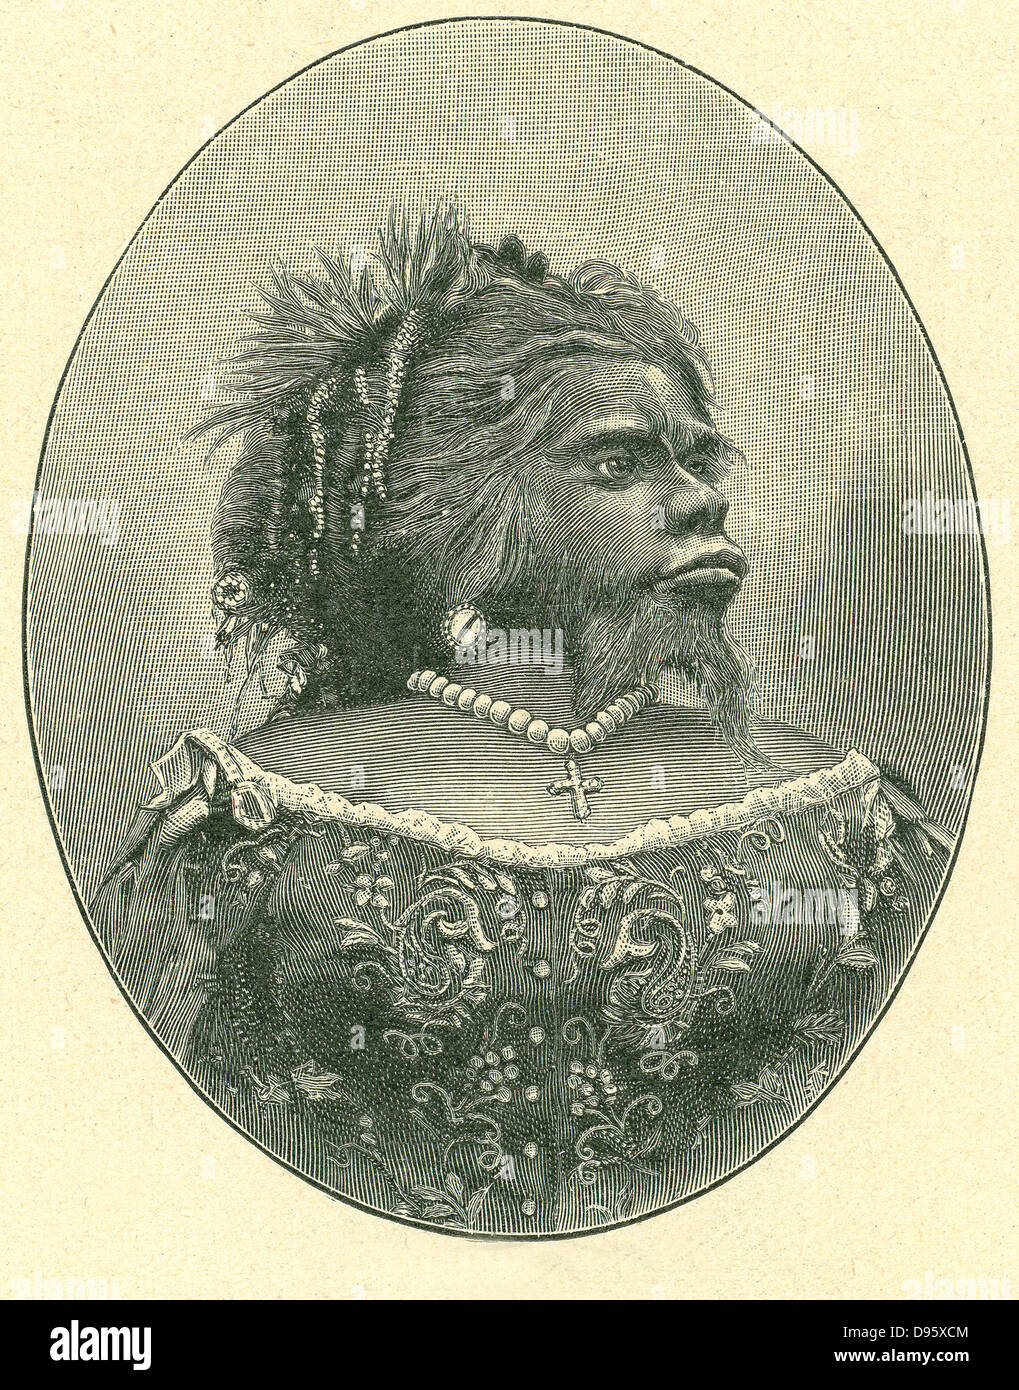 Julia Pastrana the Mexican bearded woman (1834-1860). She suffered from congenital hirsutism combined with gingival - Stock Image